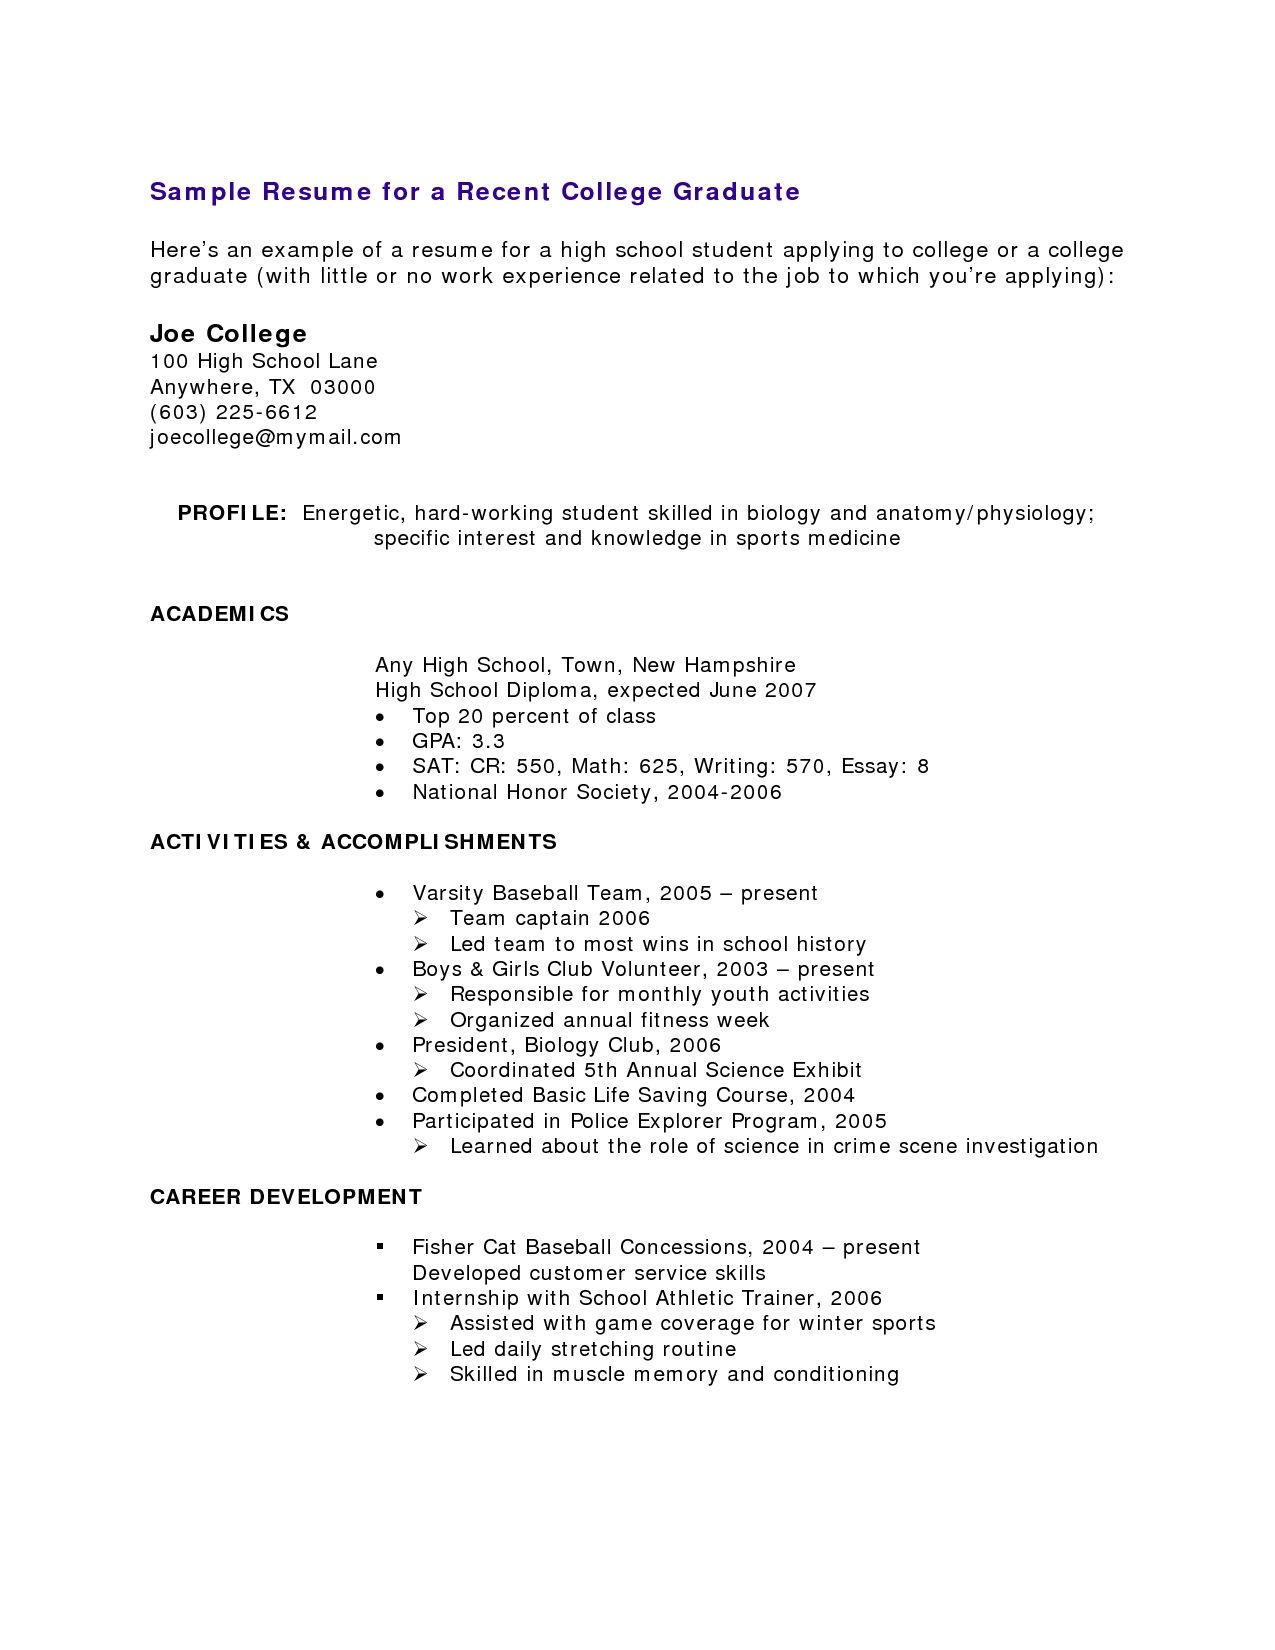 The Most High School Student Resume With No Work